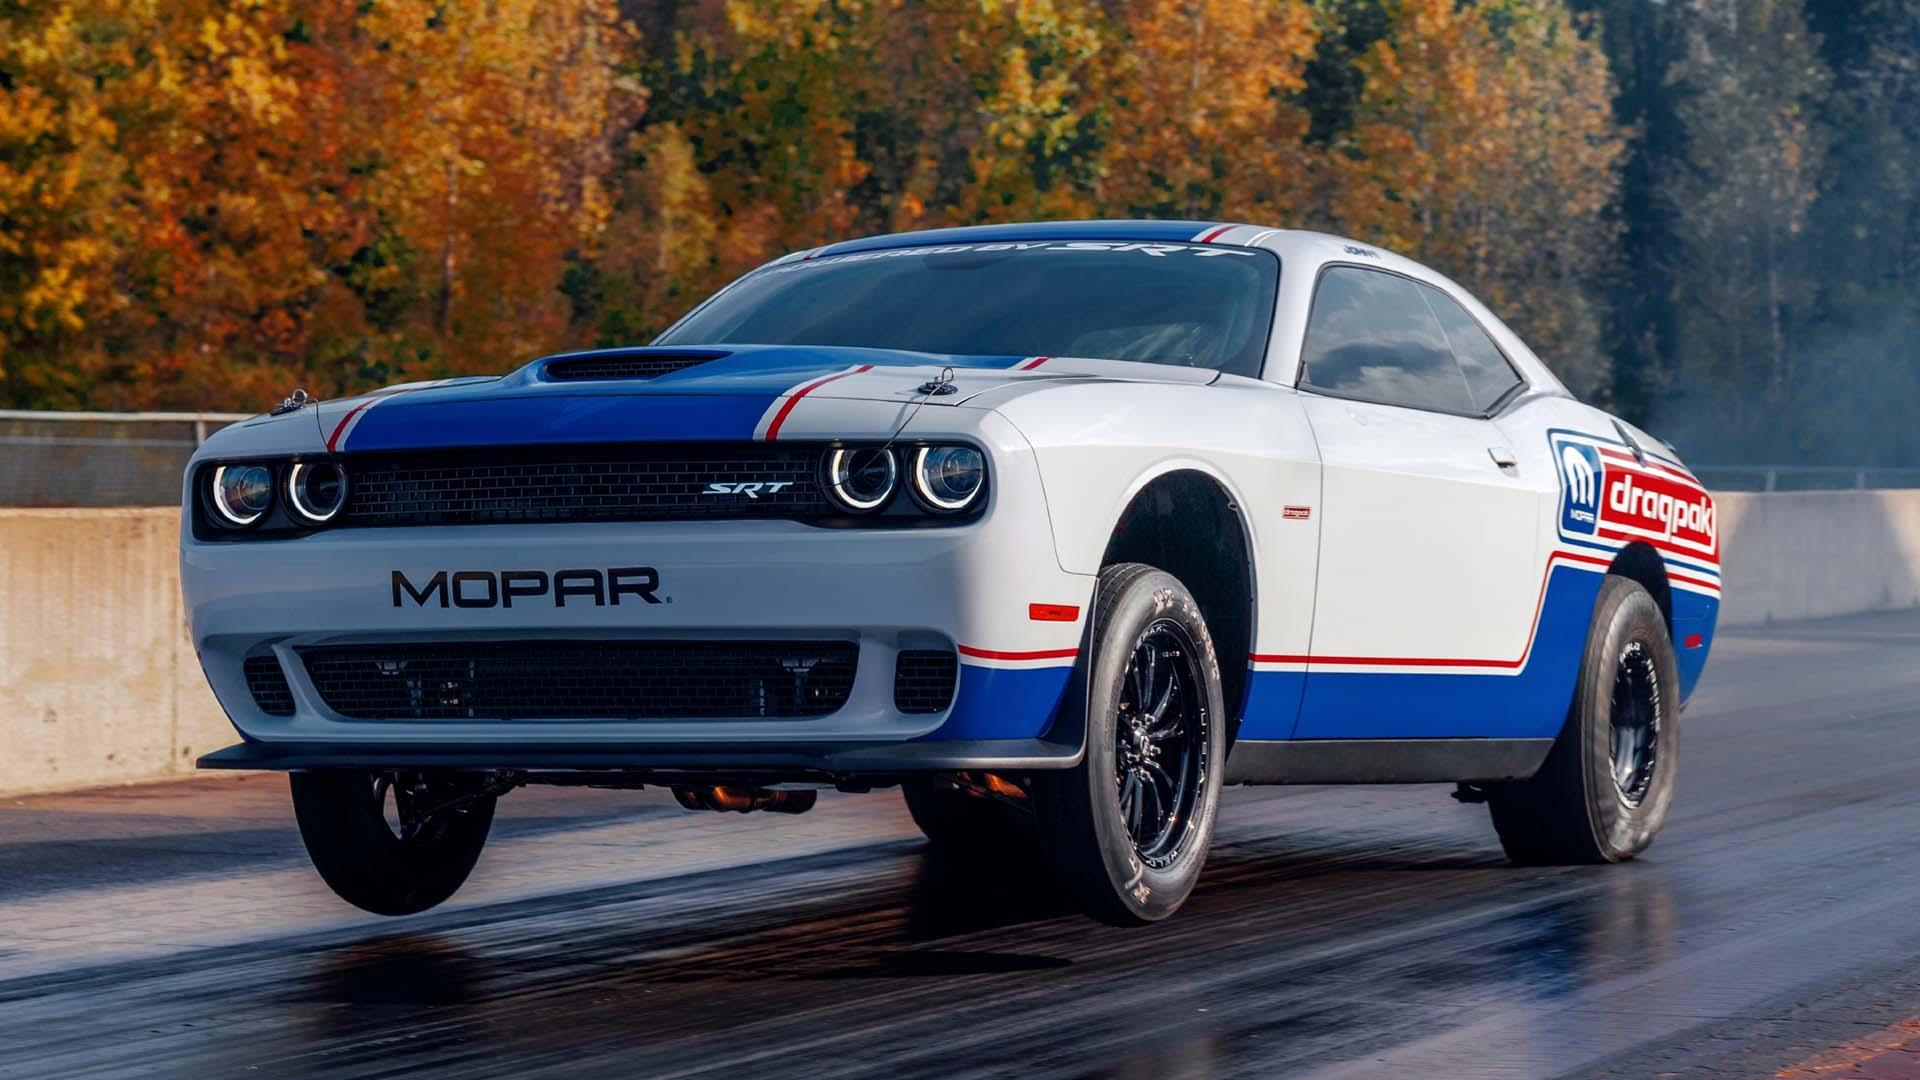 live your life 1/4 mile at a time in a 2021 dodge